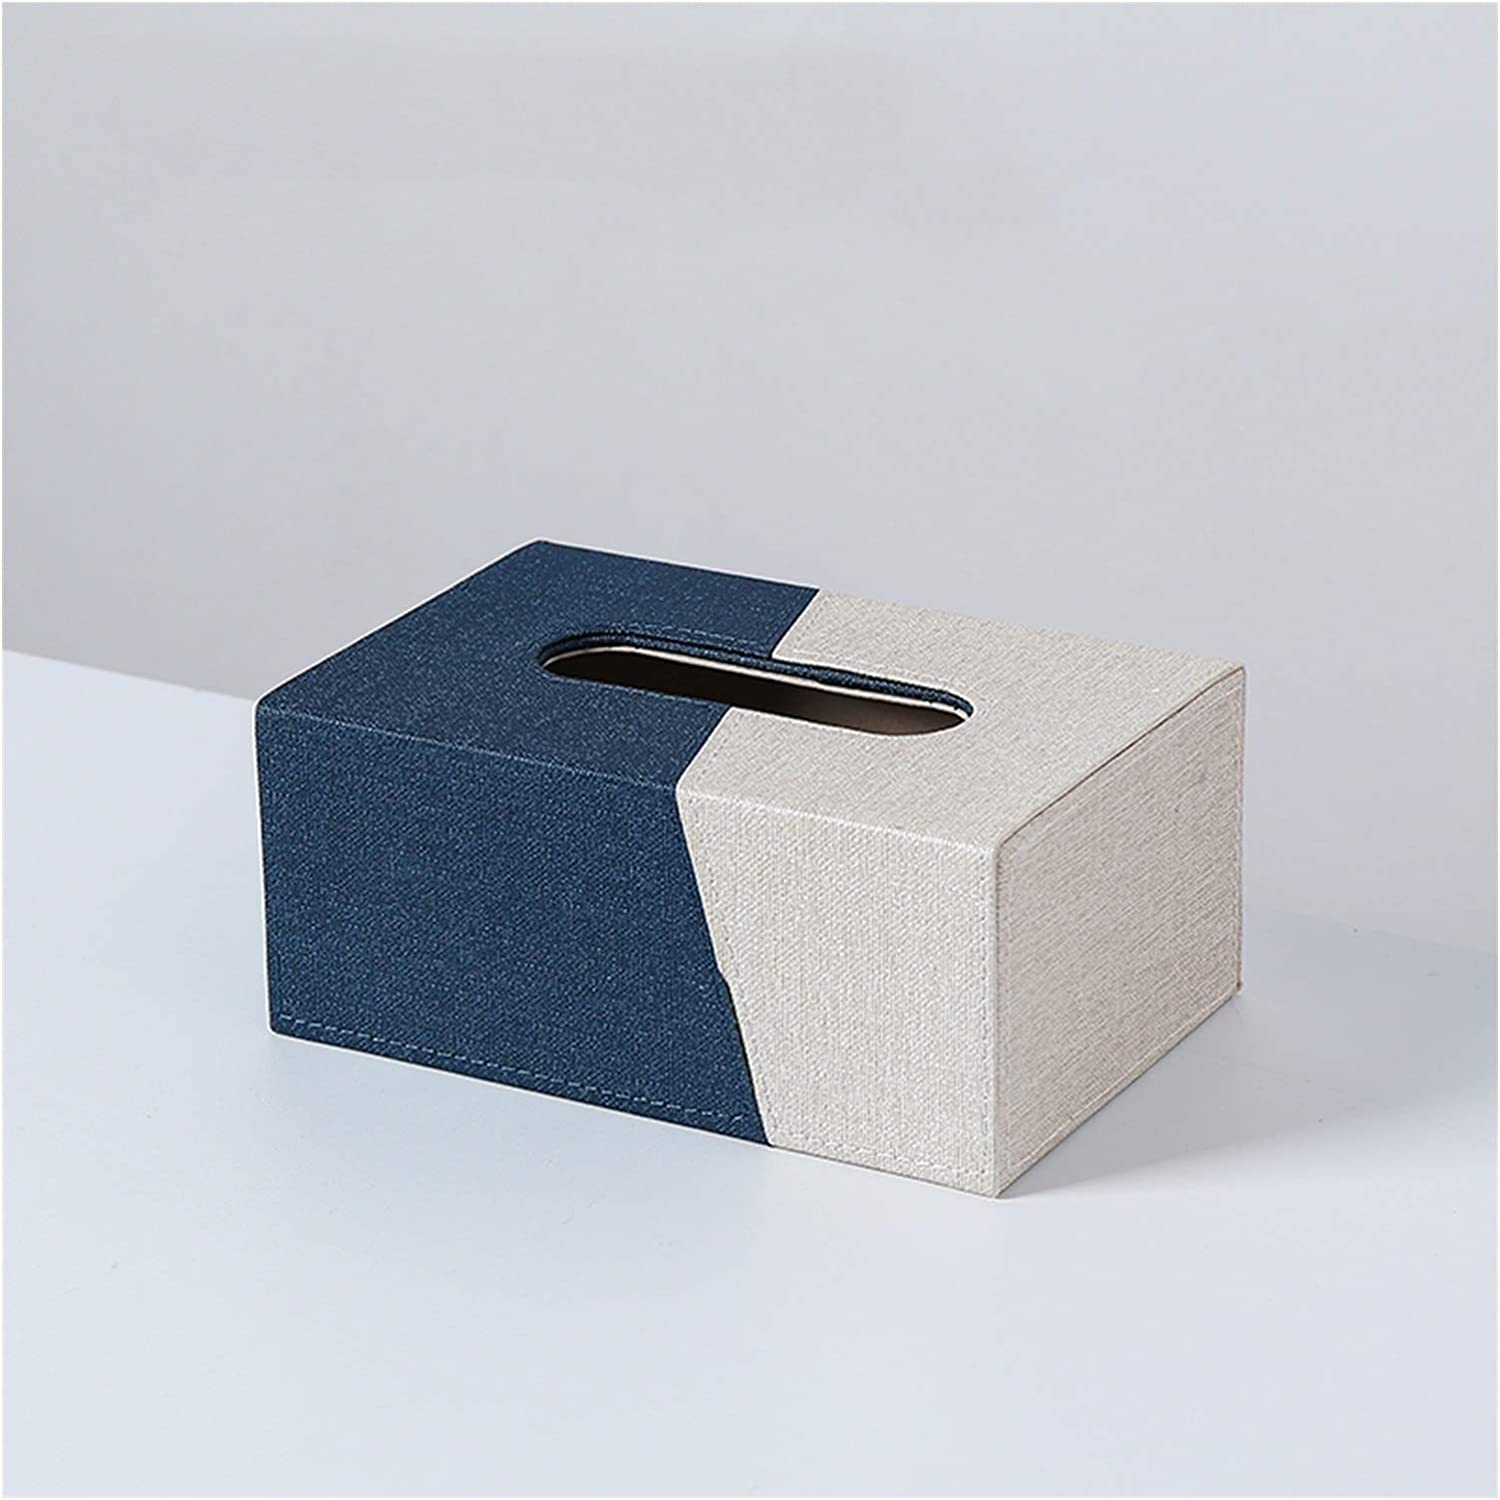 Tissue Max 64% OFF Dispenser Box Suitable Rooms of wholesale for